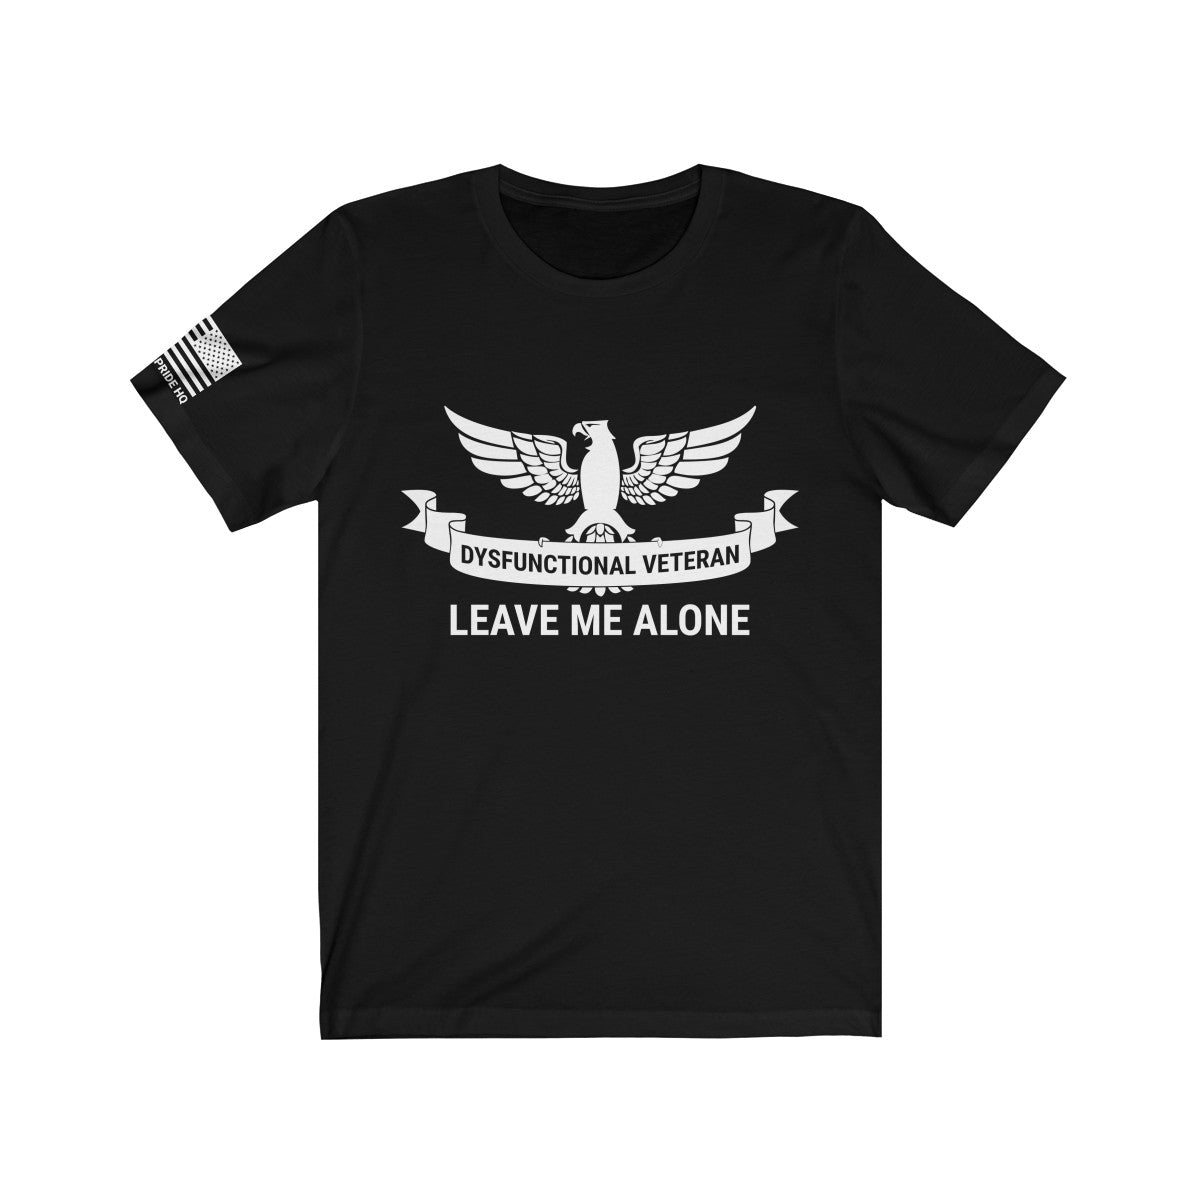 Dysfunctional Veteran - Leave Me Alone Men's T-Shirt